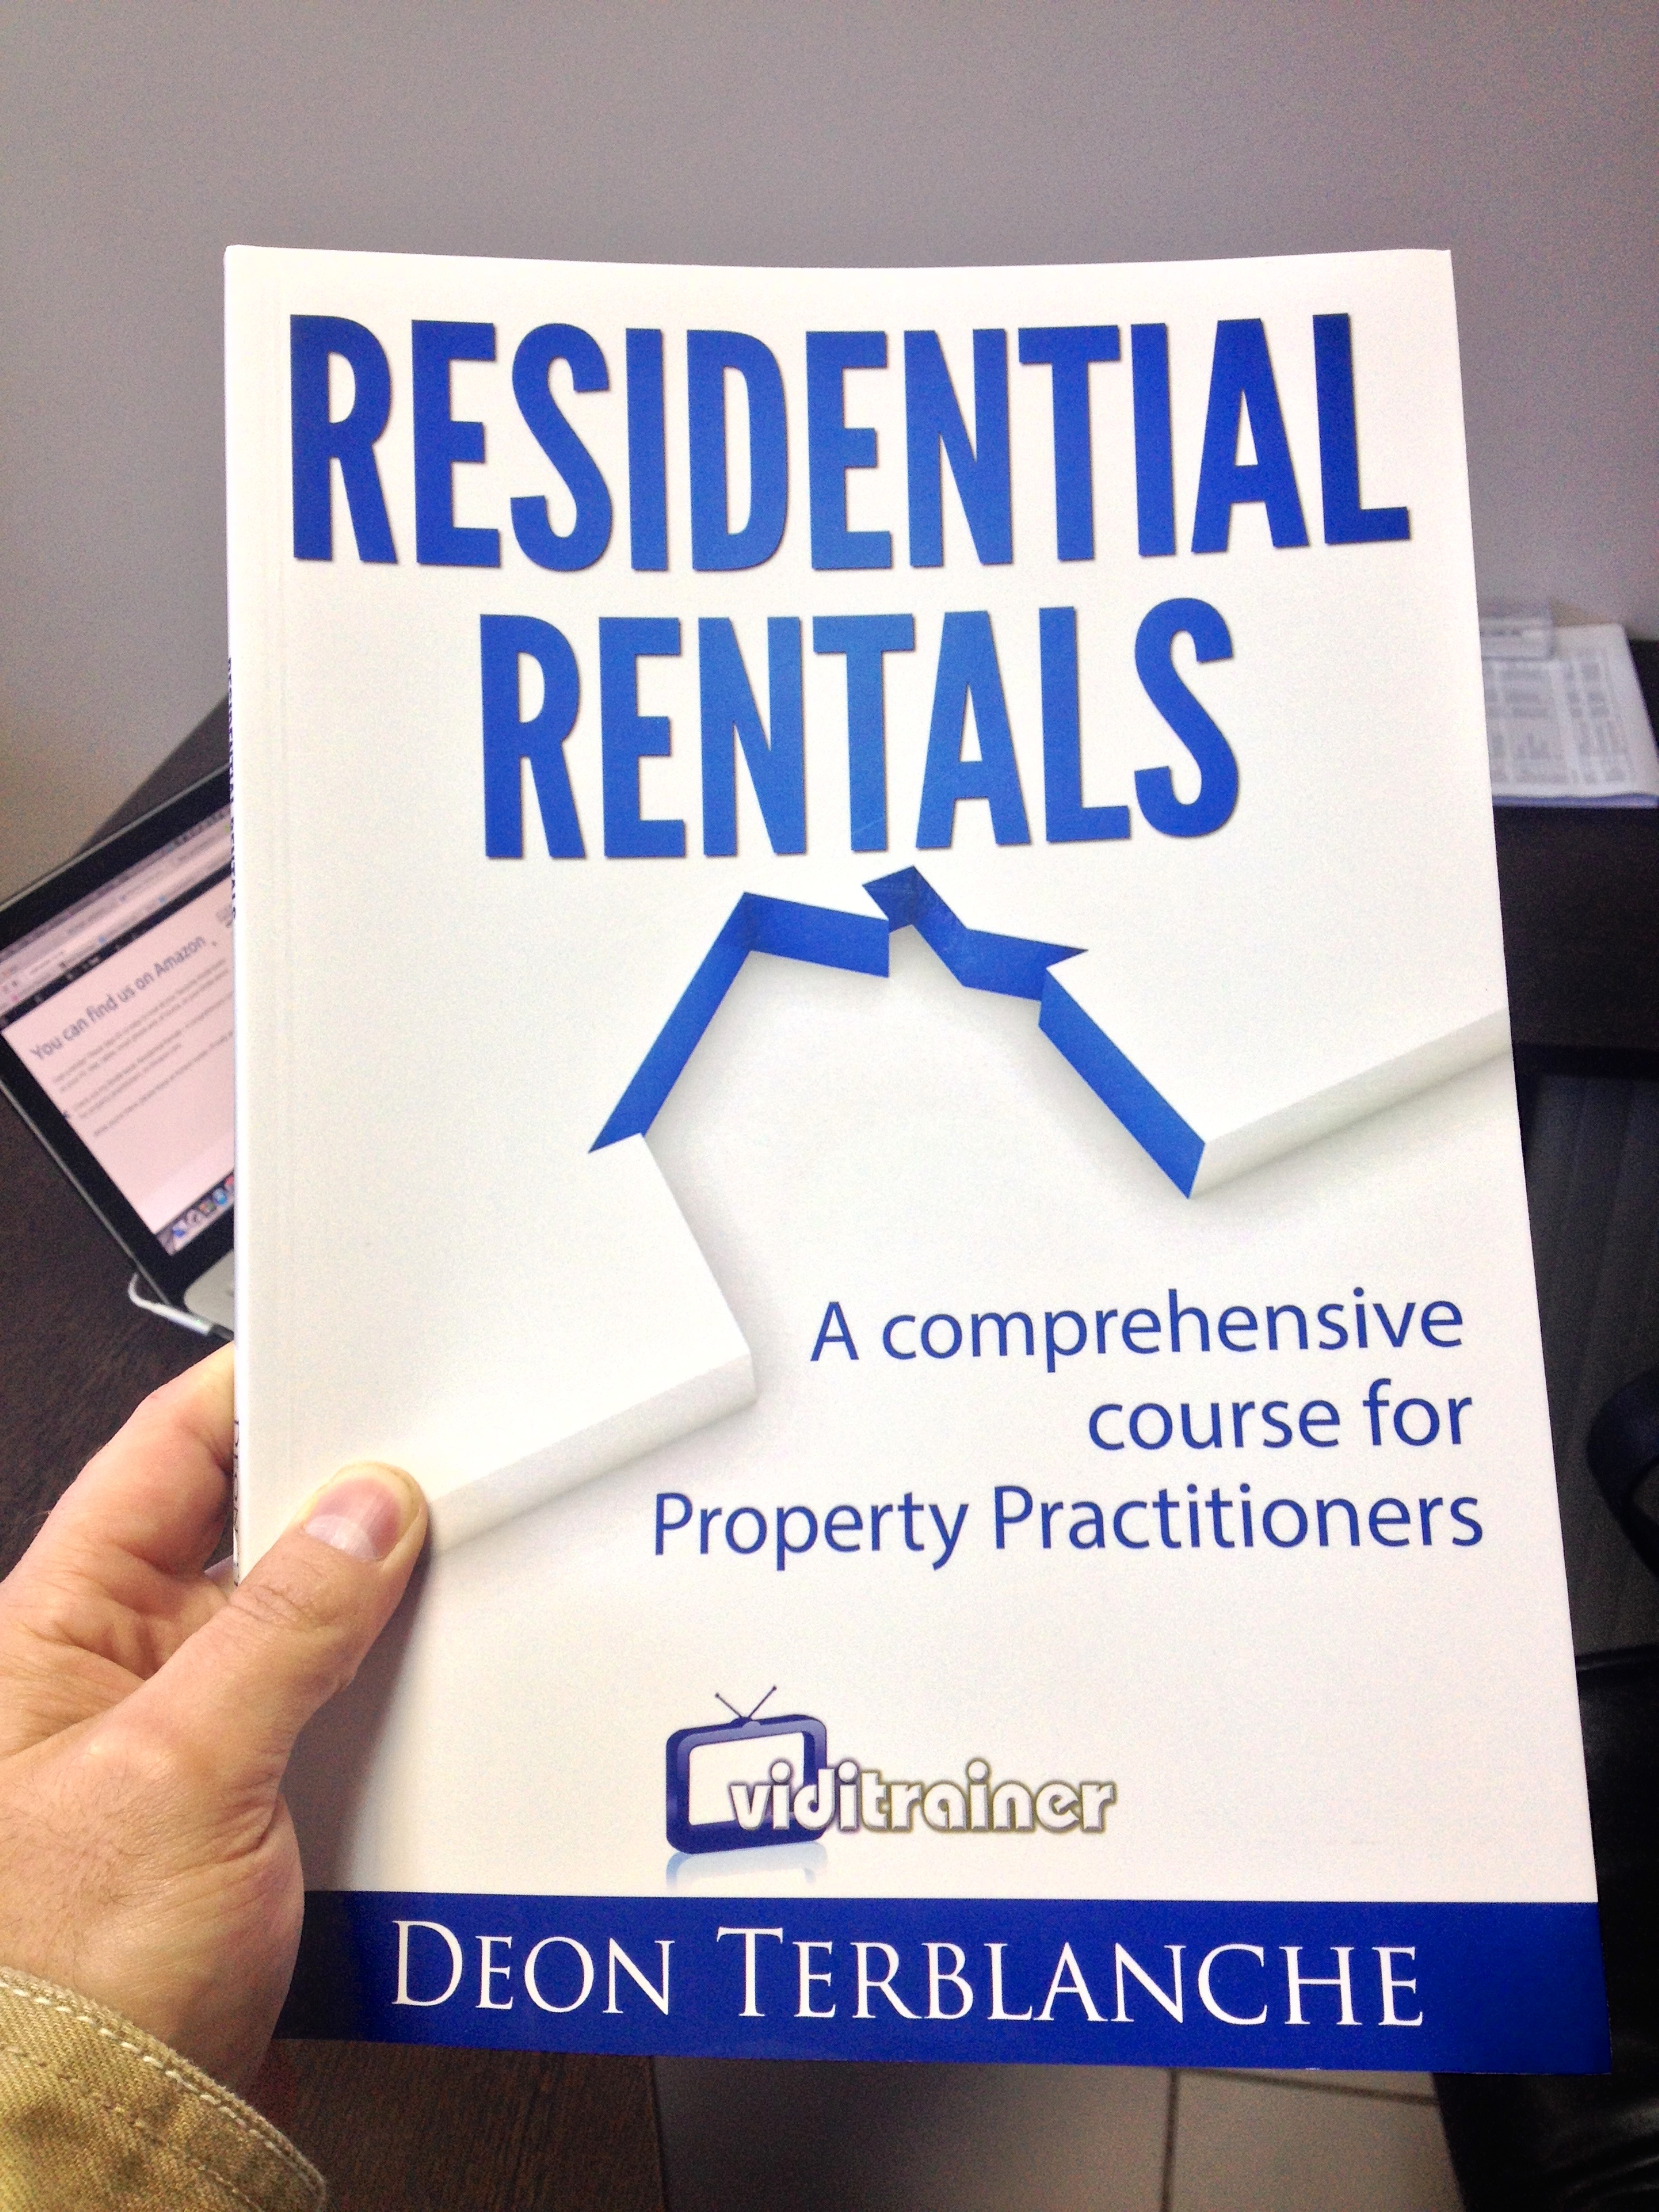 Image of front cover of Residential Rentals for Property Practitioners book